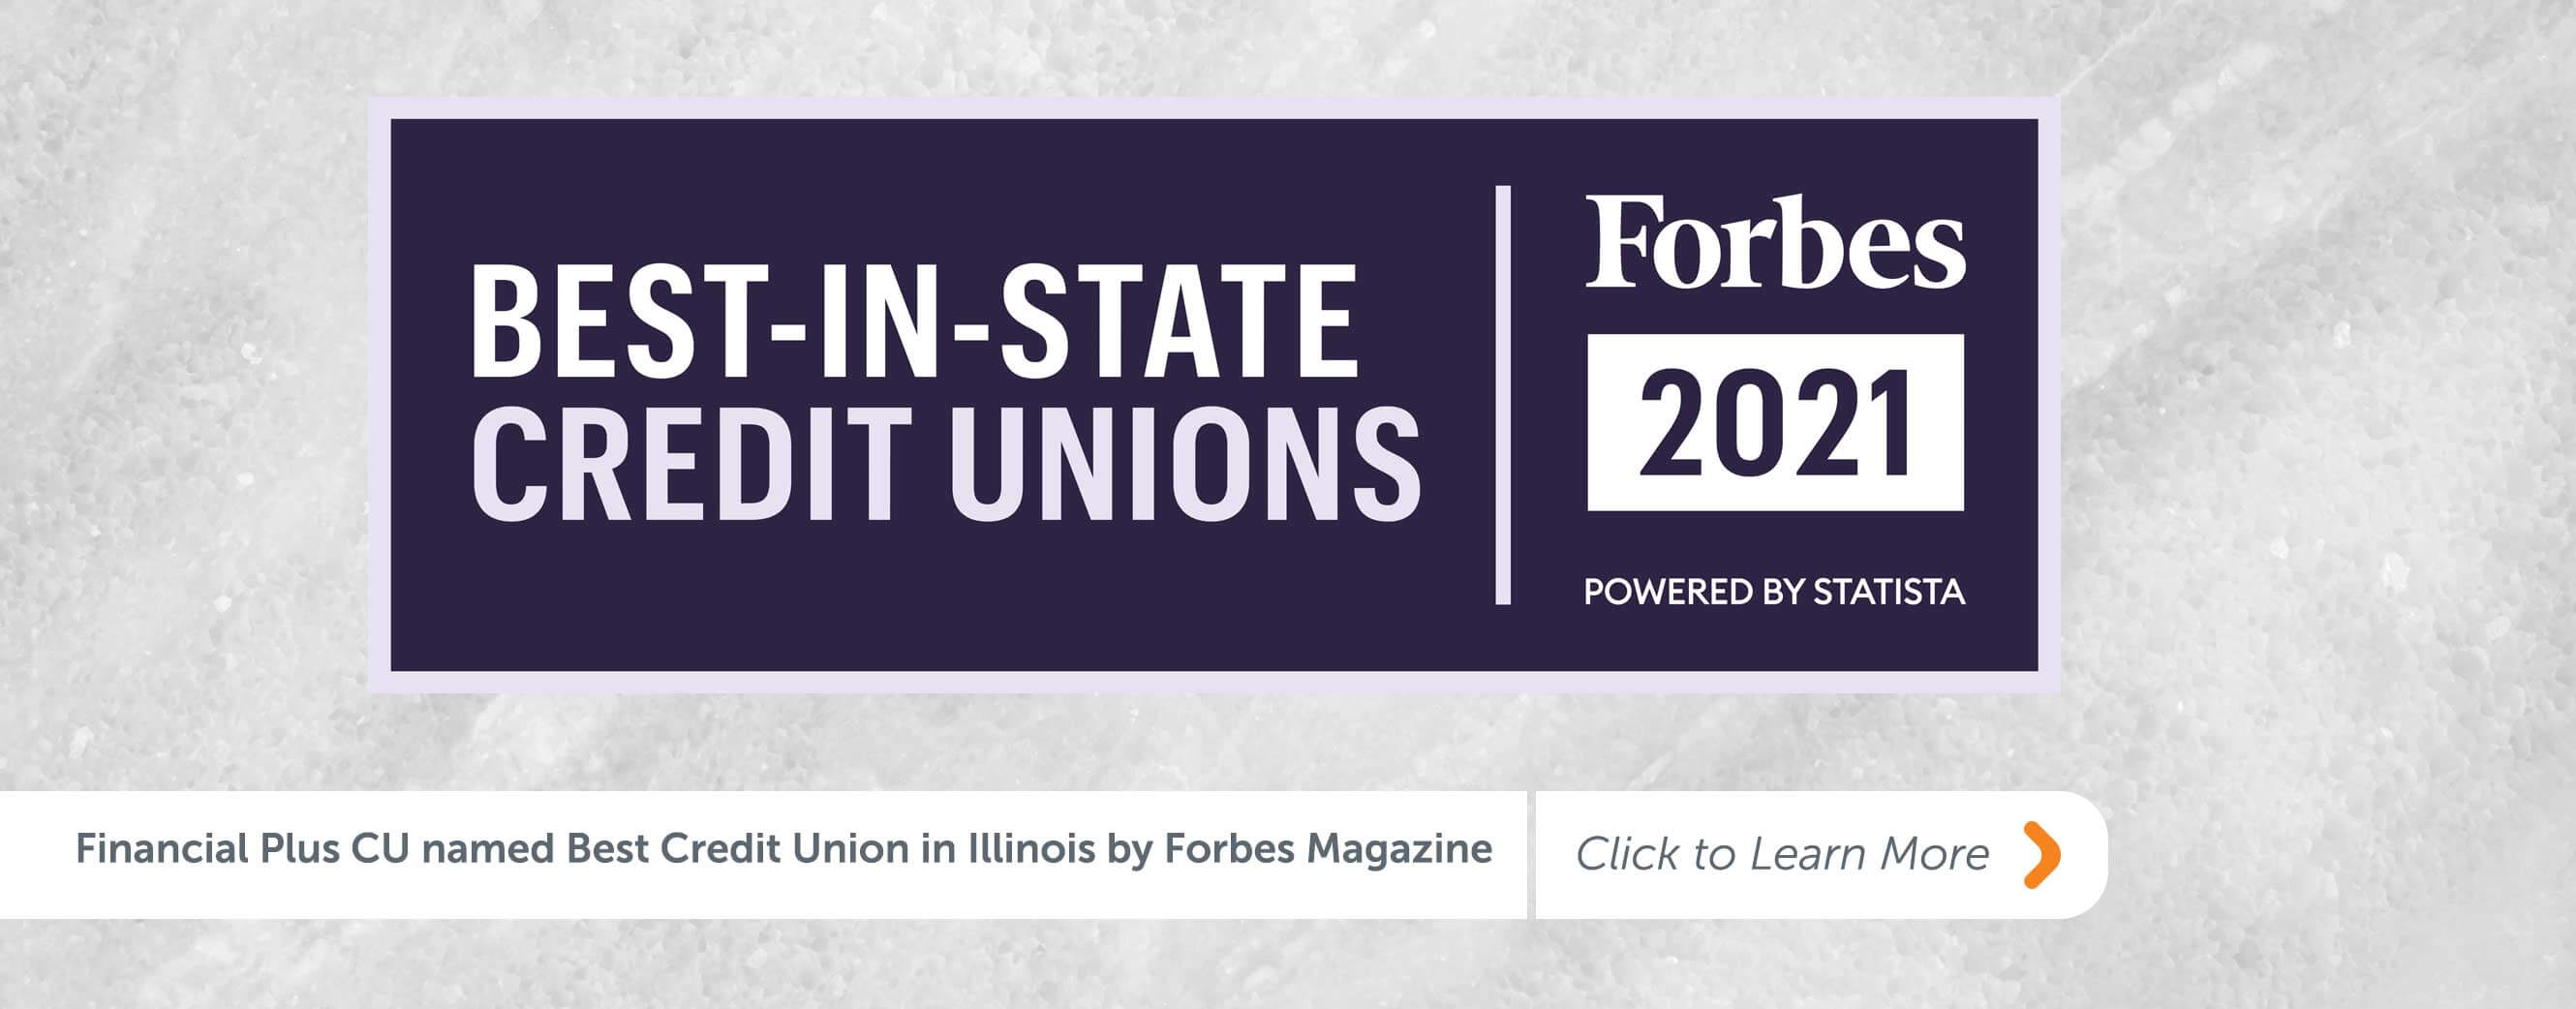 Financial Plus CU named Best Credit Union in Illinois by Forbes Magazine Click to Learn More